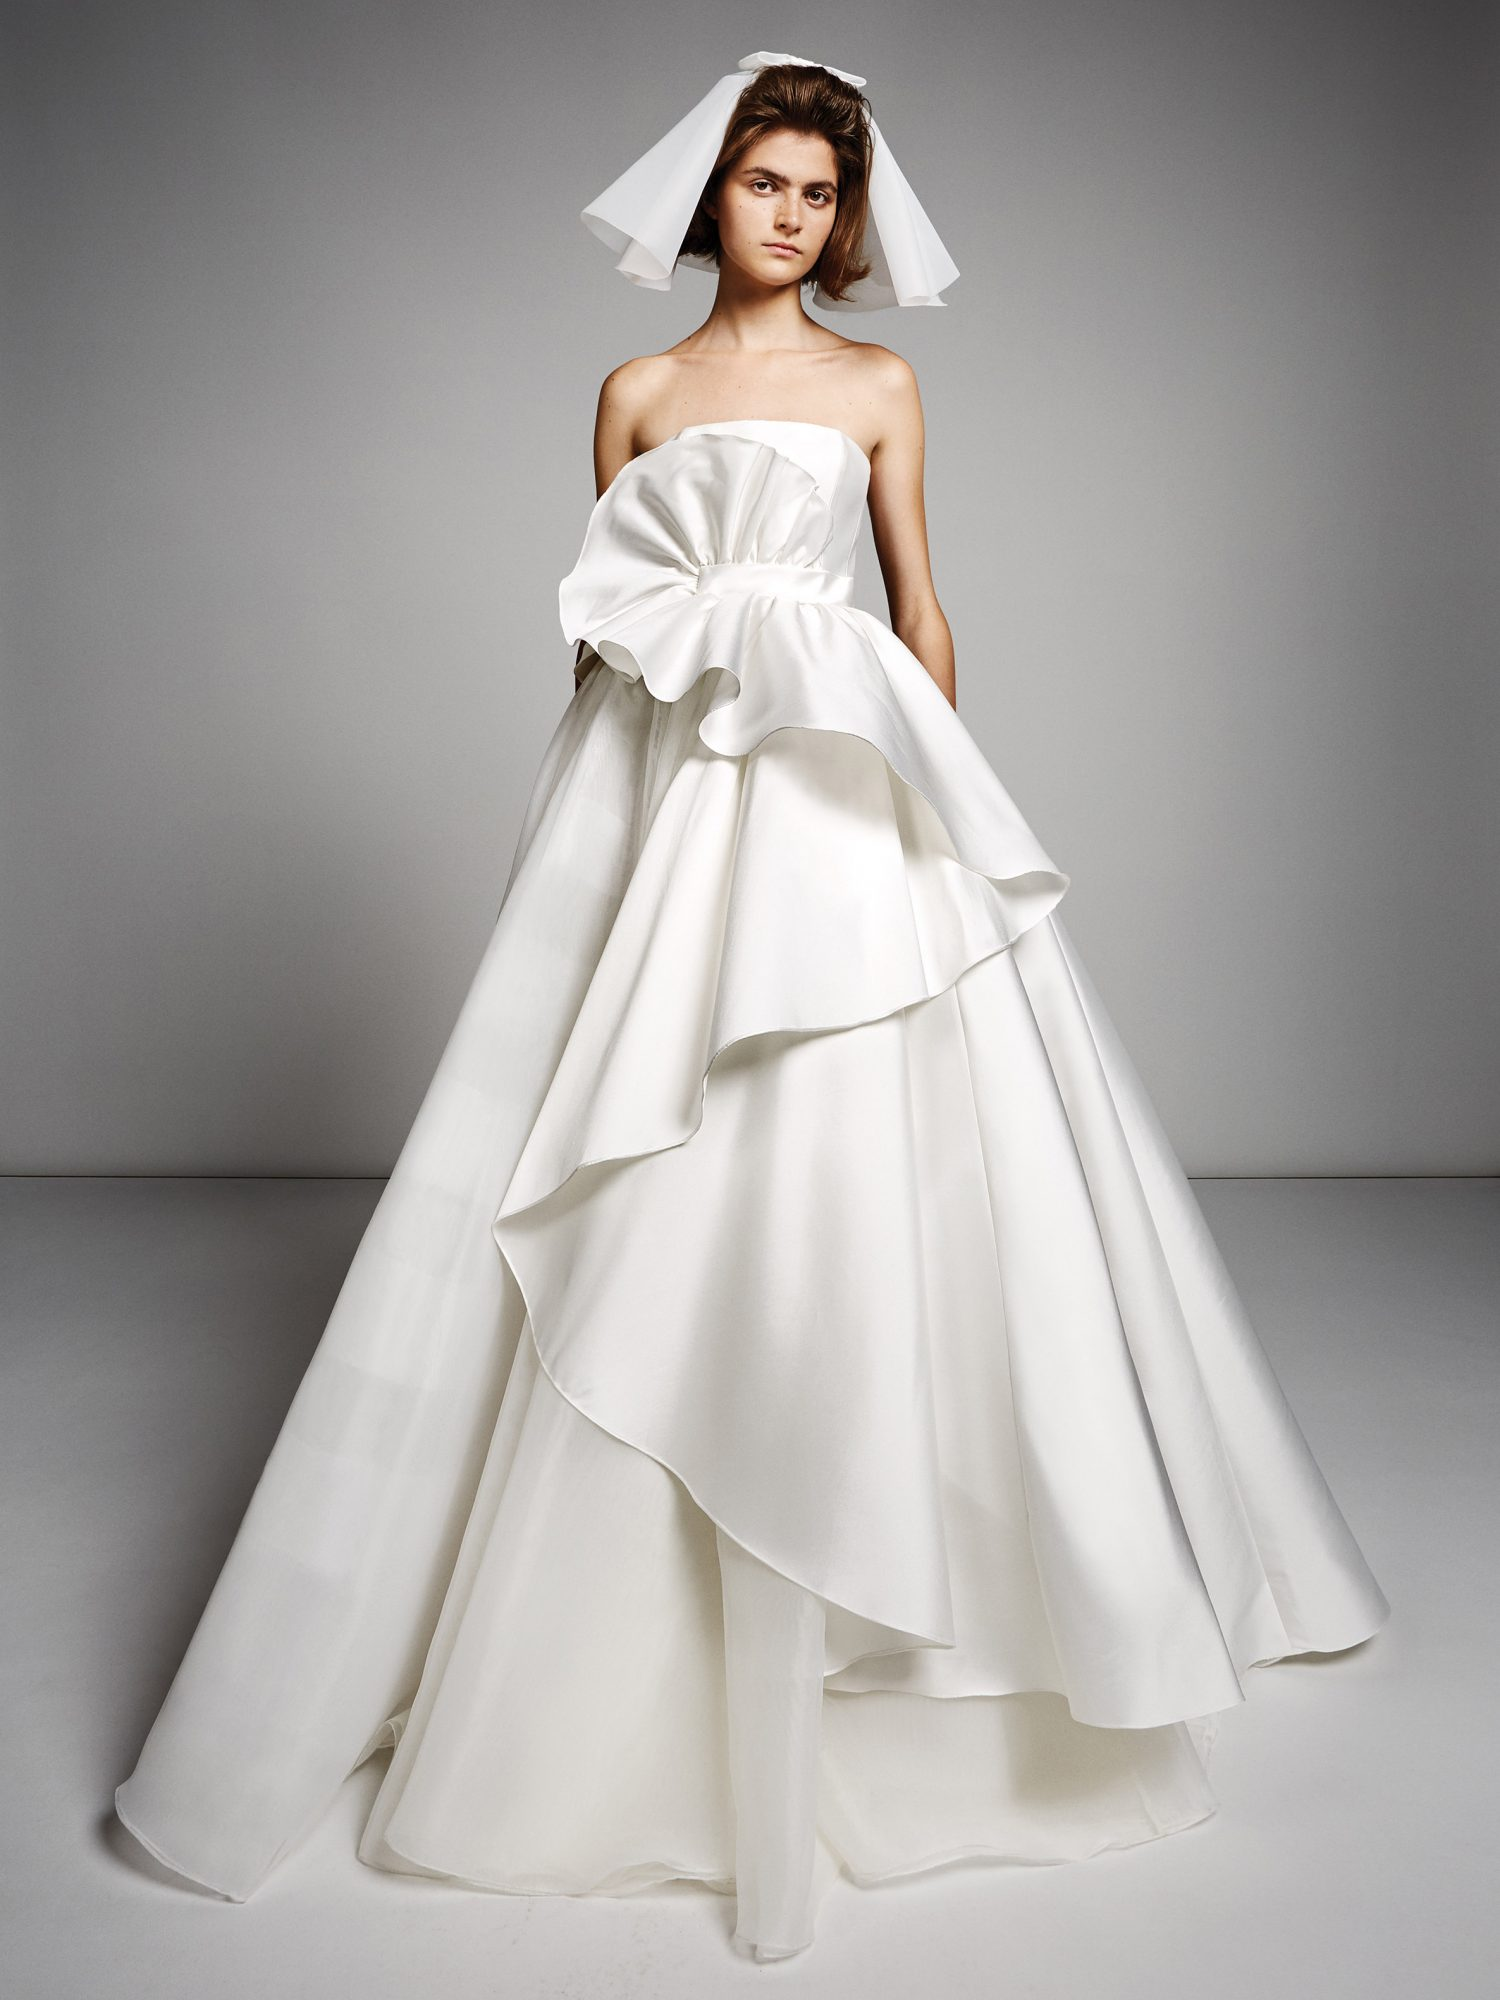 viktor rolf marriage fall 2019 strapless tiered ballgown